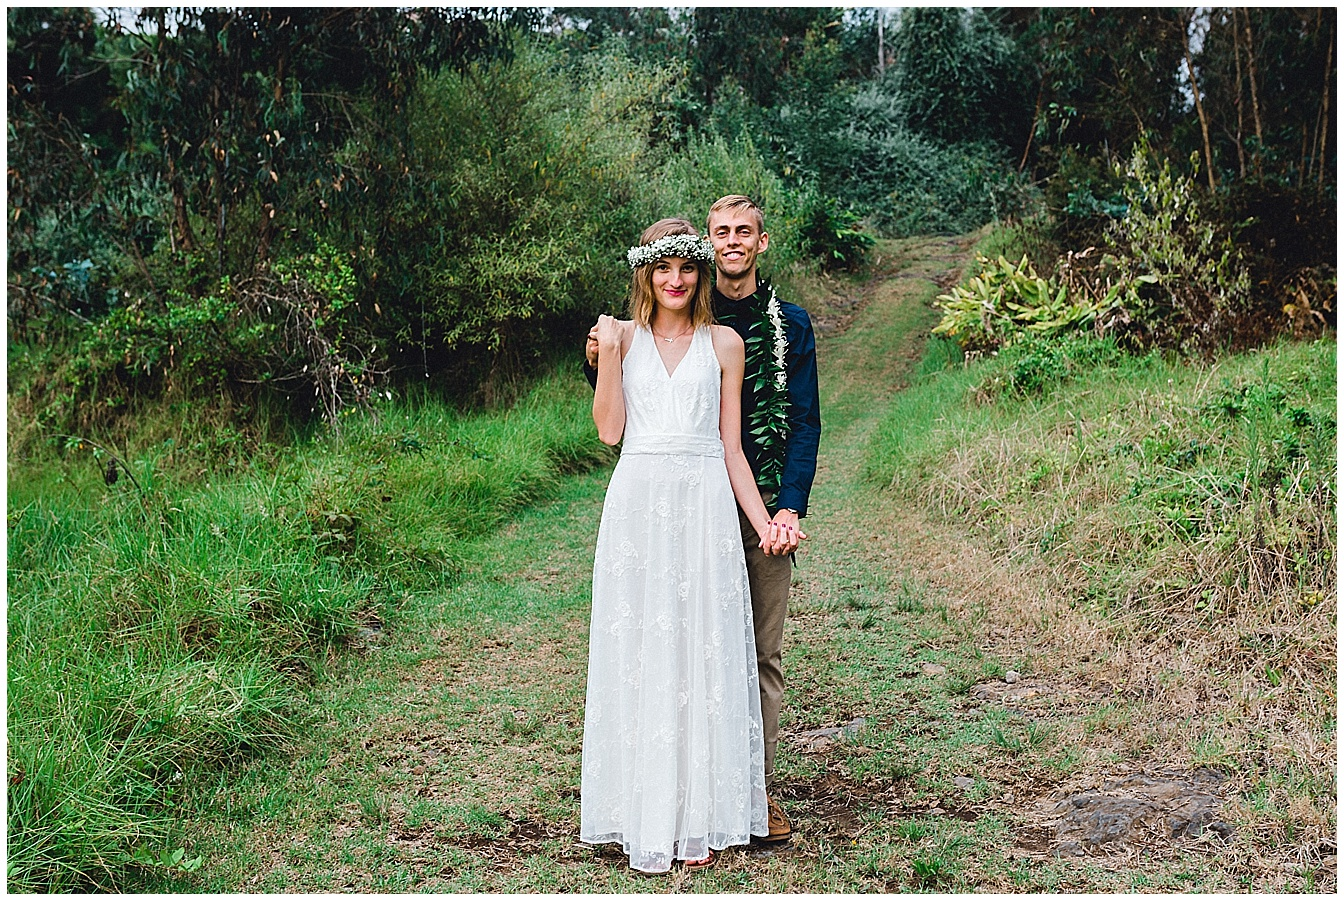 Maui bride and groom at Maui UpCountry wedding